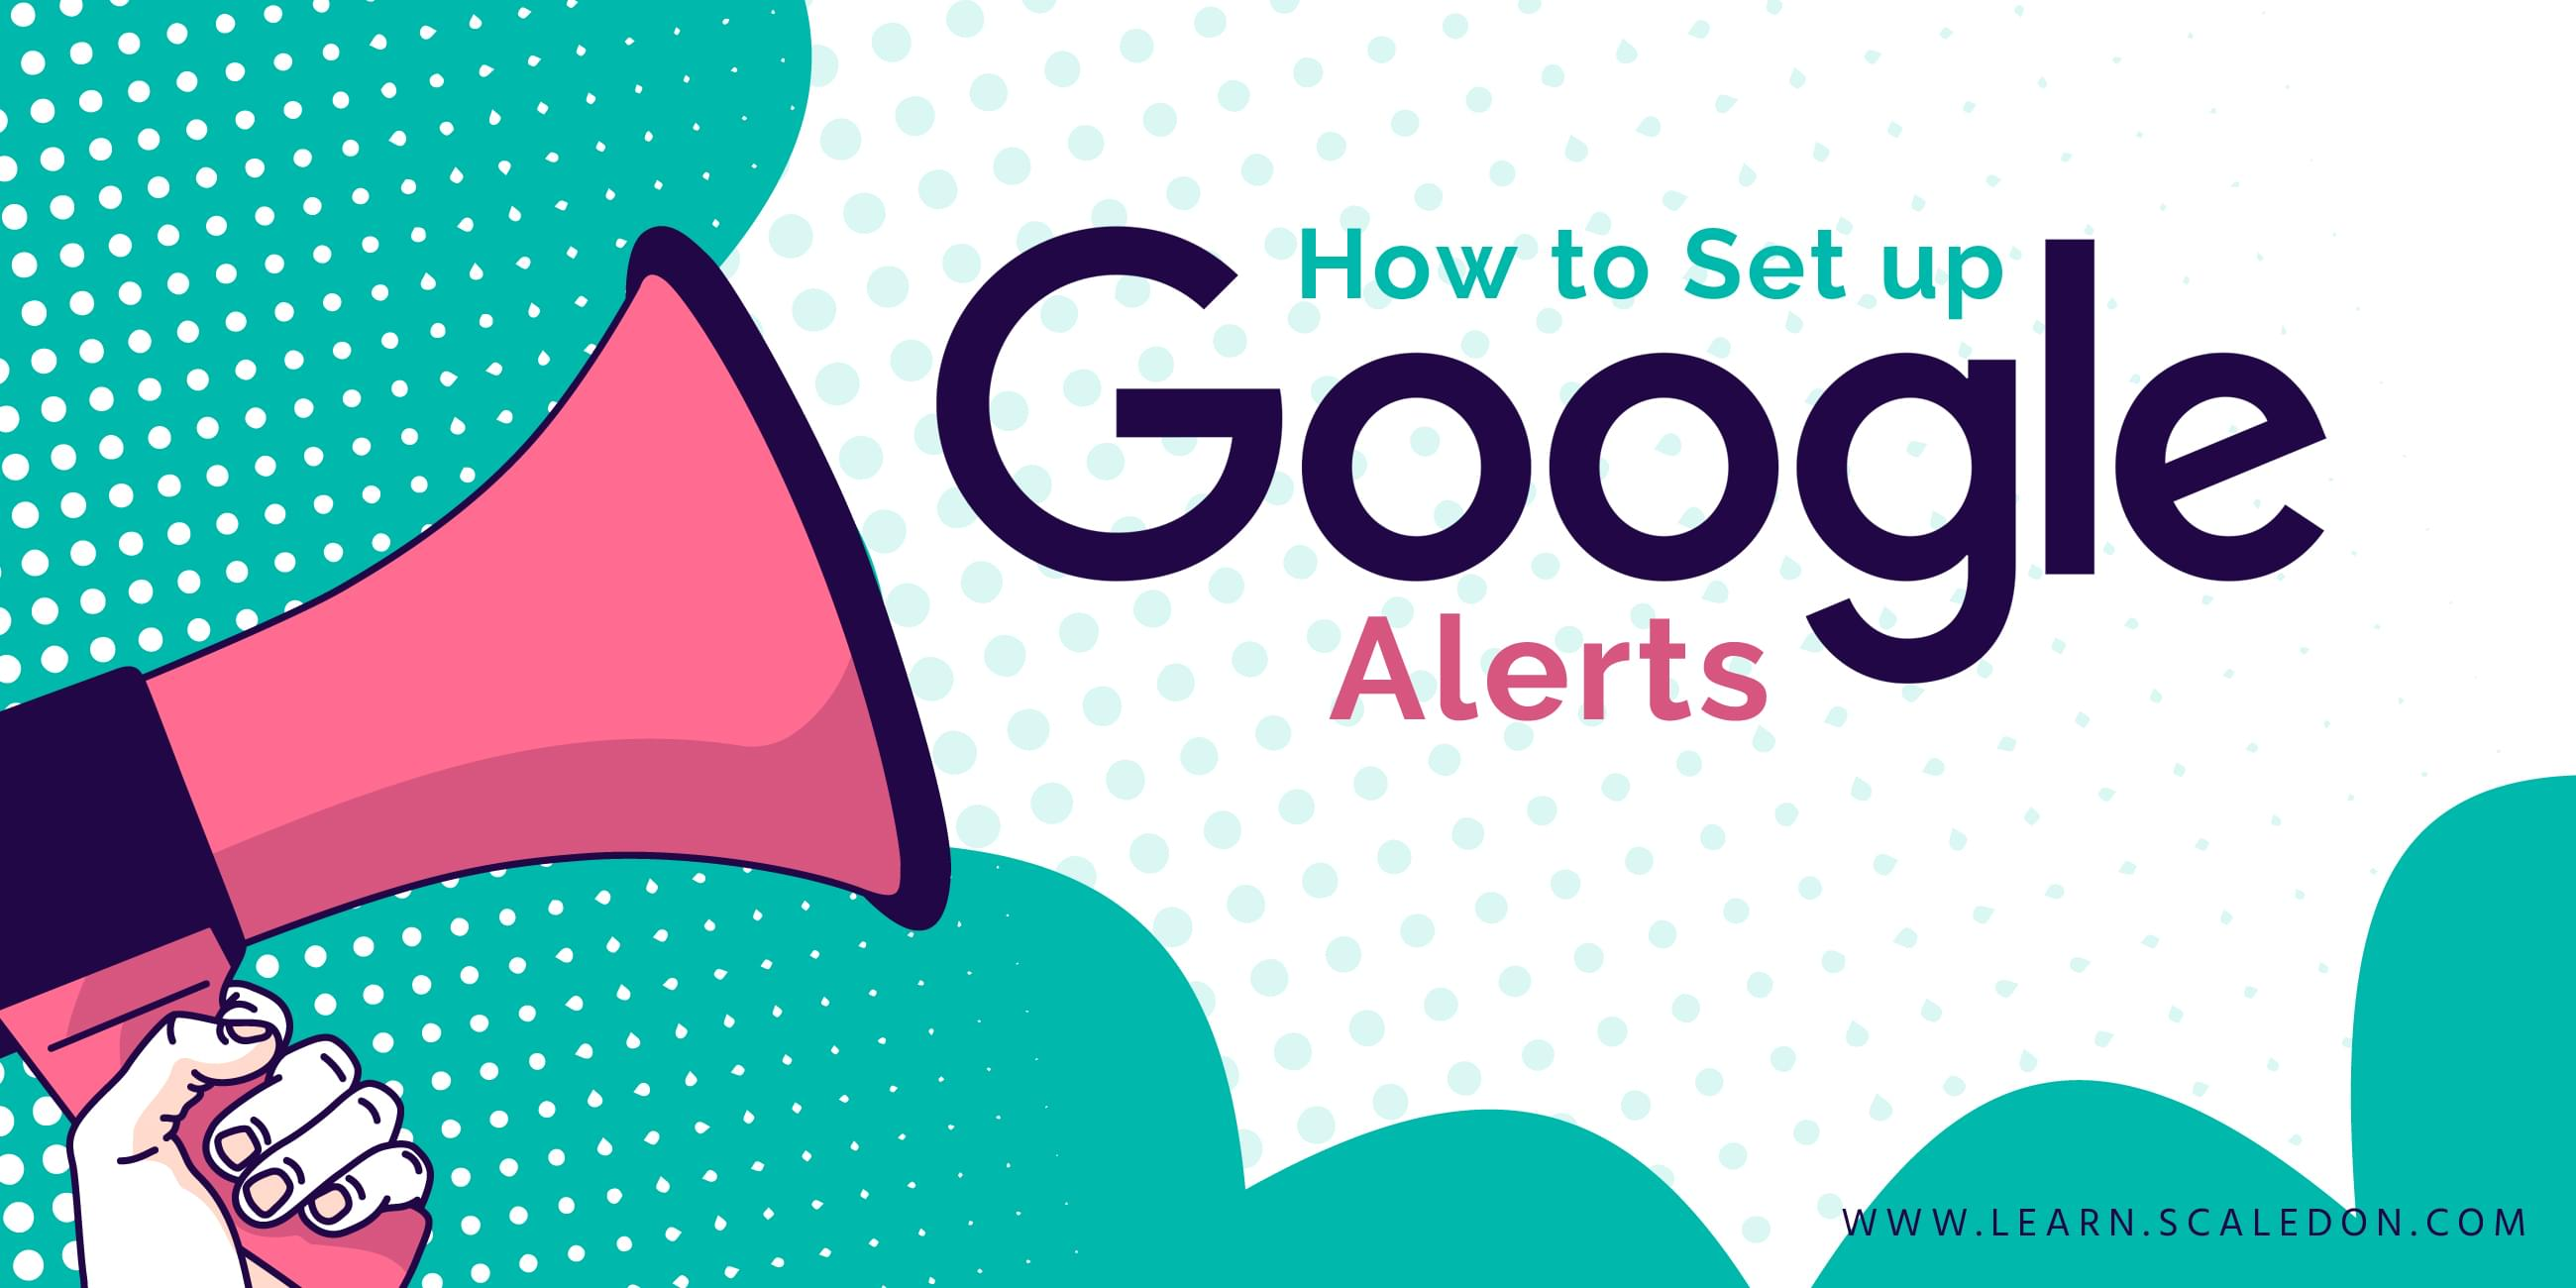 How to Set up Google Alerts to Automate 8 SEO and Marketing